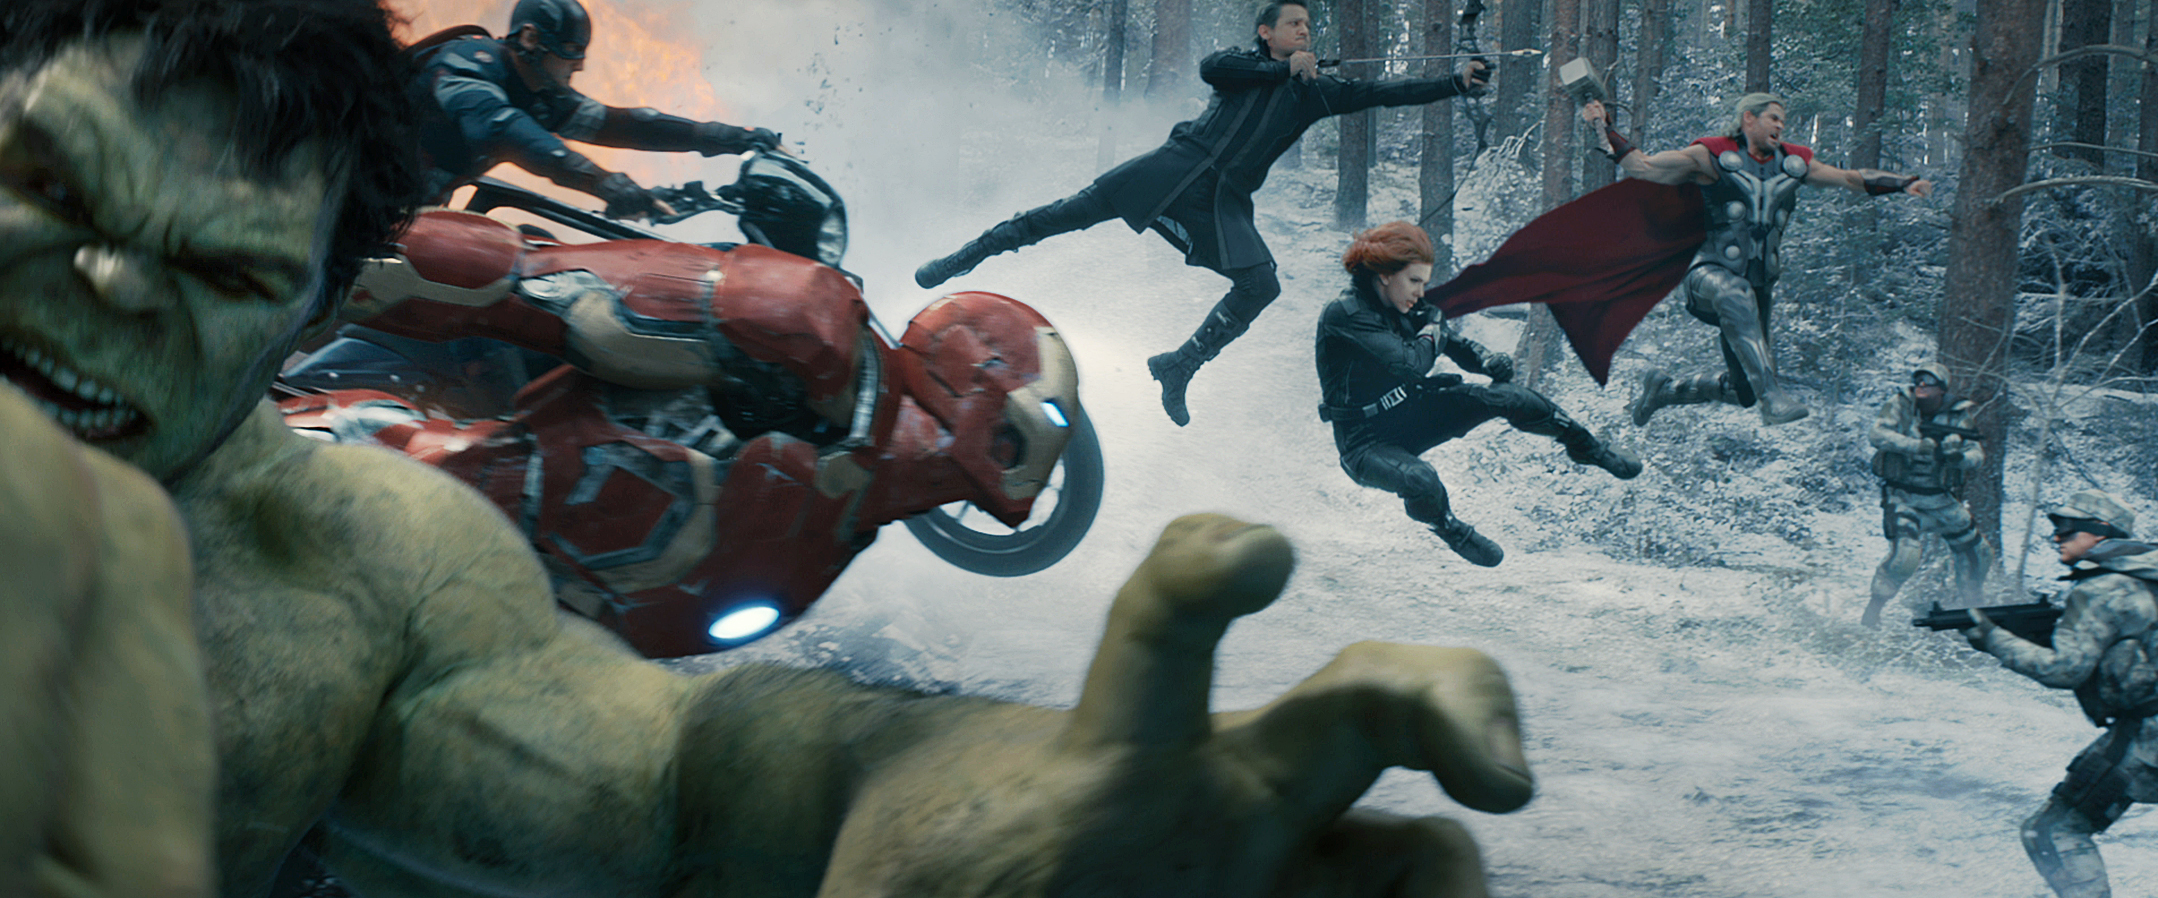 #AvengersEvent – Spoiler-Free AVENGERS #AgeOfUltron Review